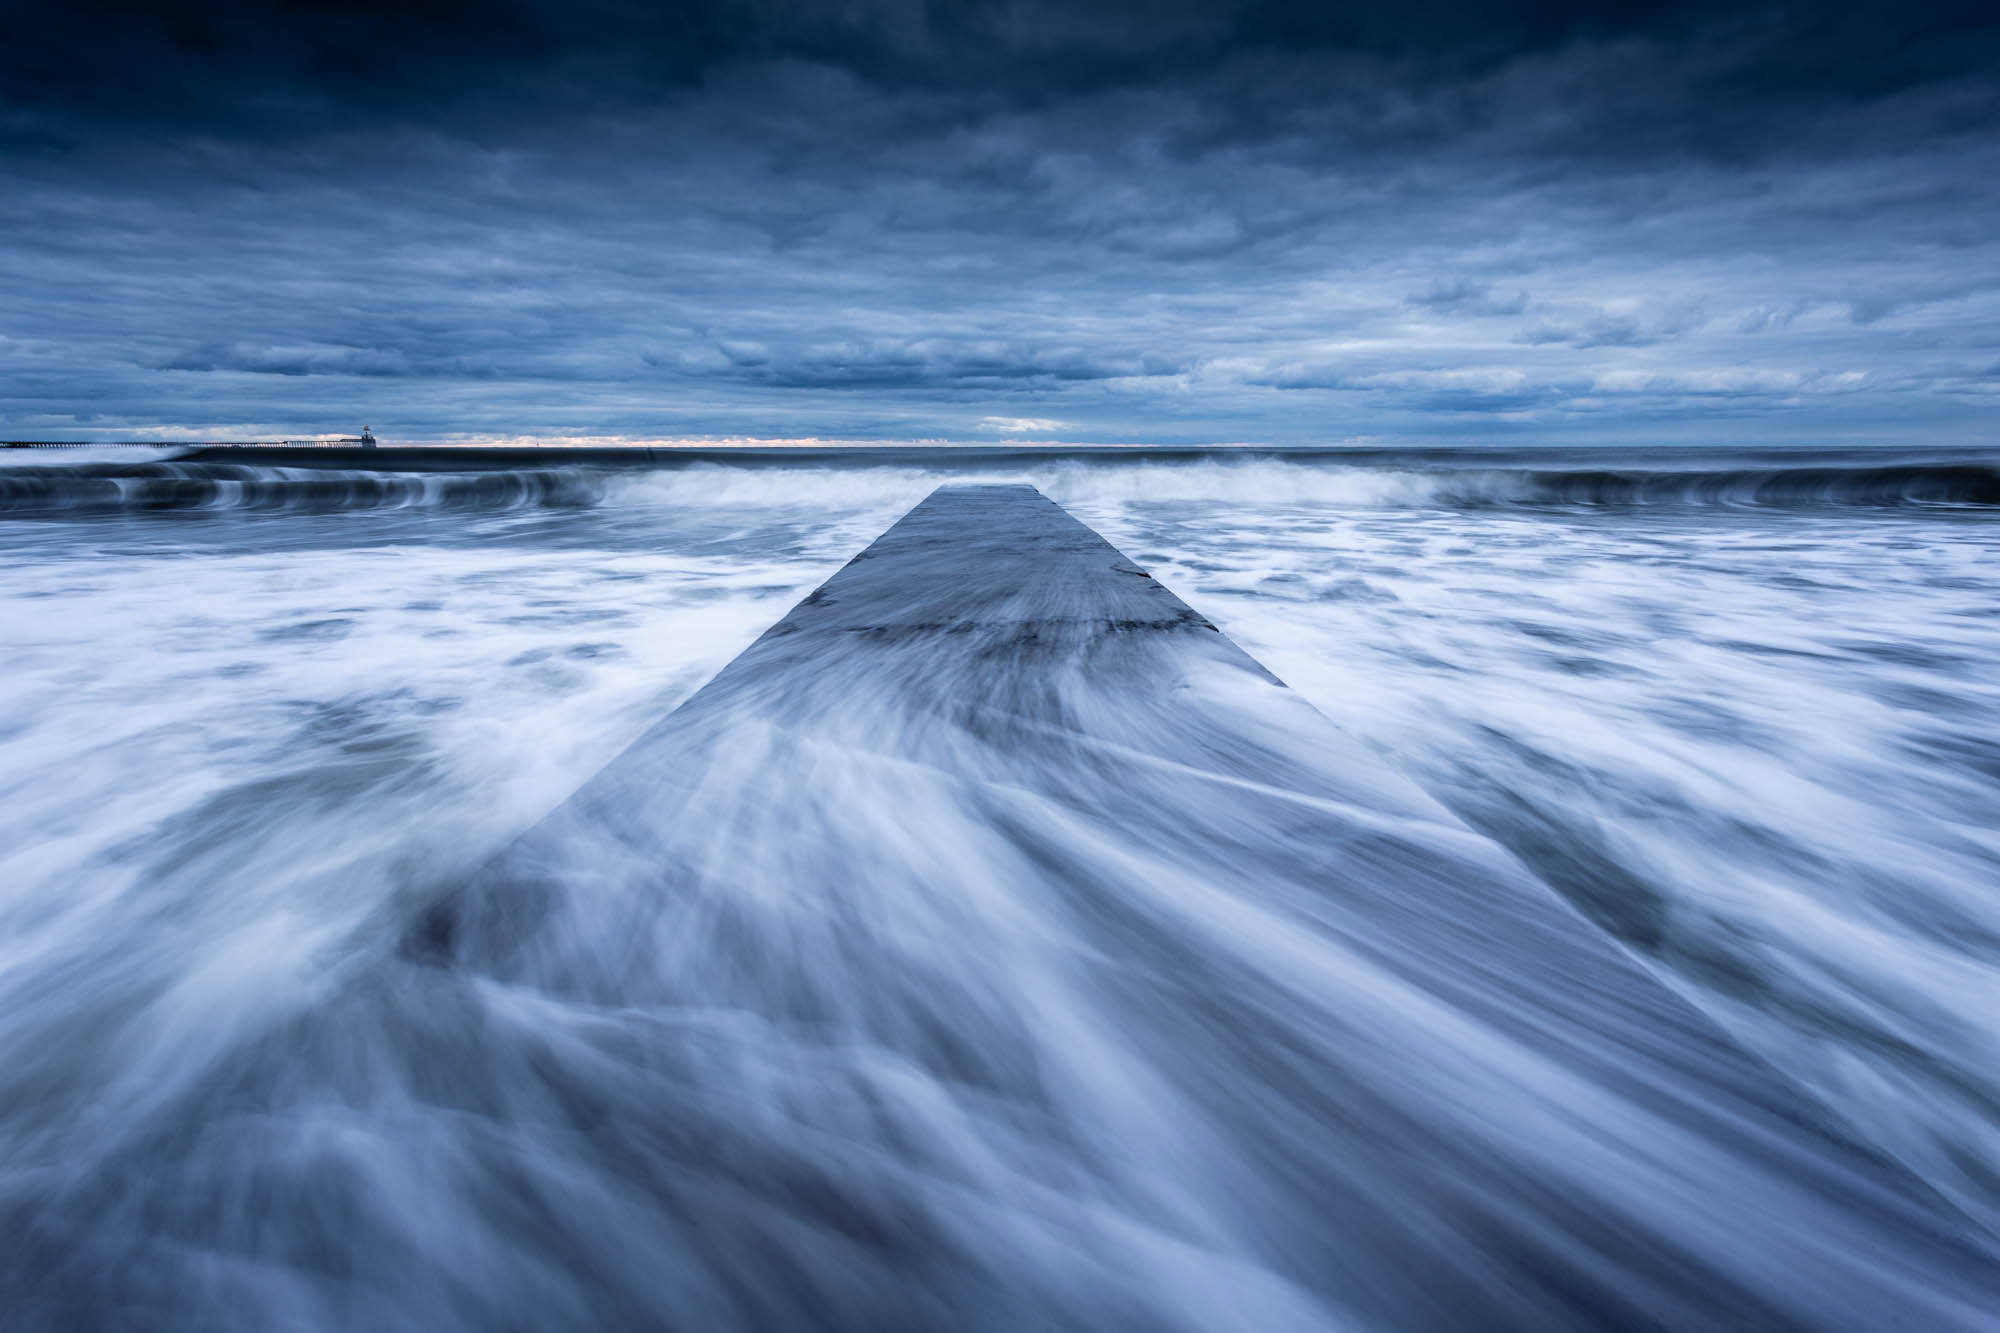 Waves sweep across the concrete jetty at Blyth Beach on the Northumberland coast. Enhanced with Photoshop's new Super Resolution feature.